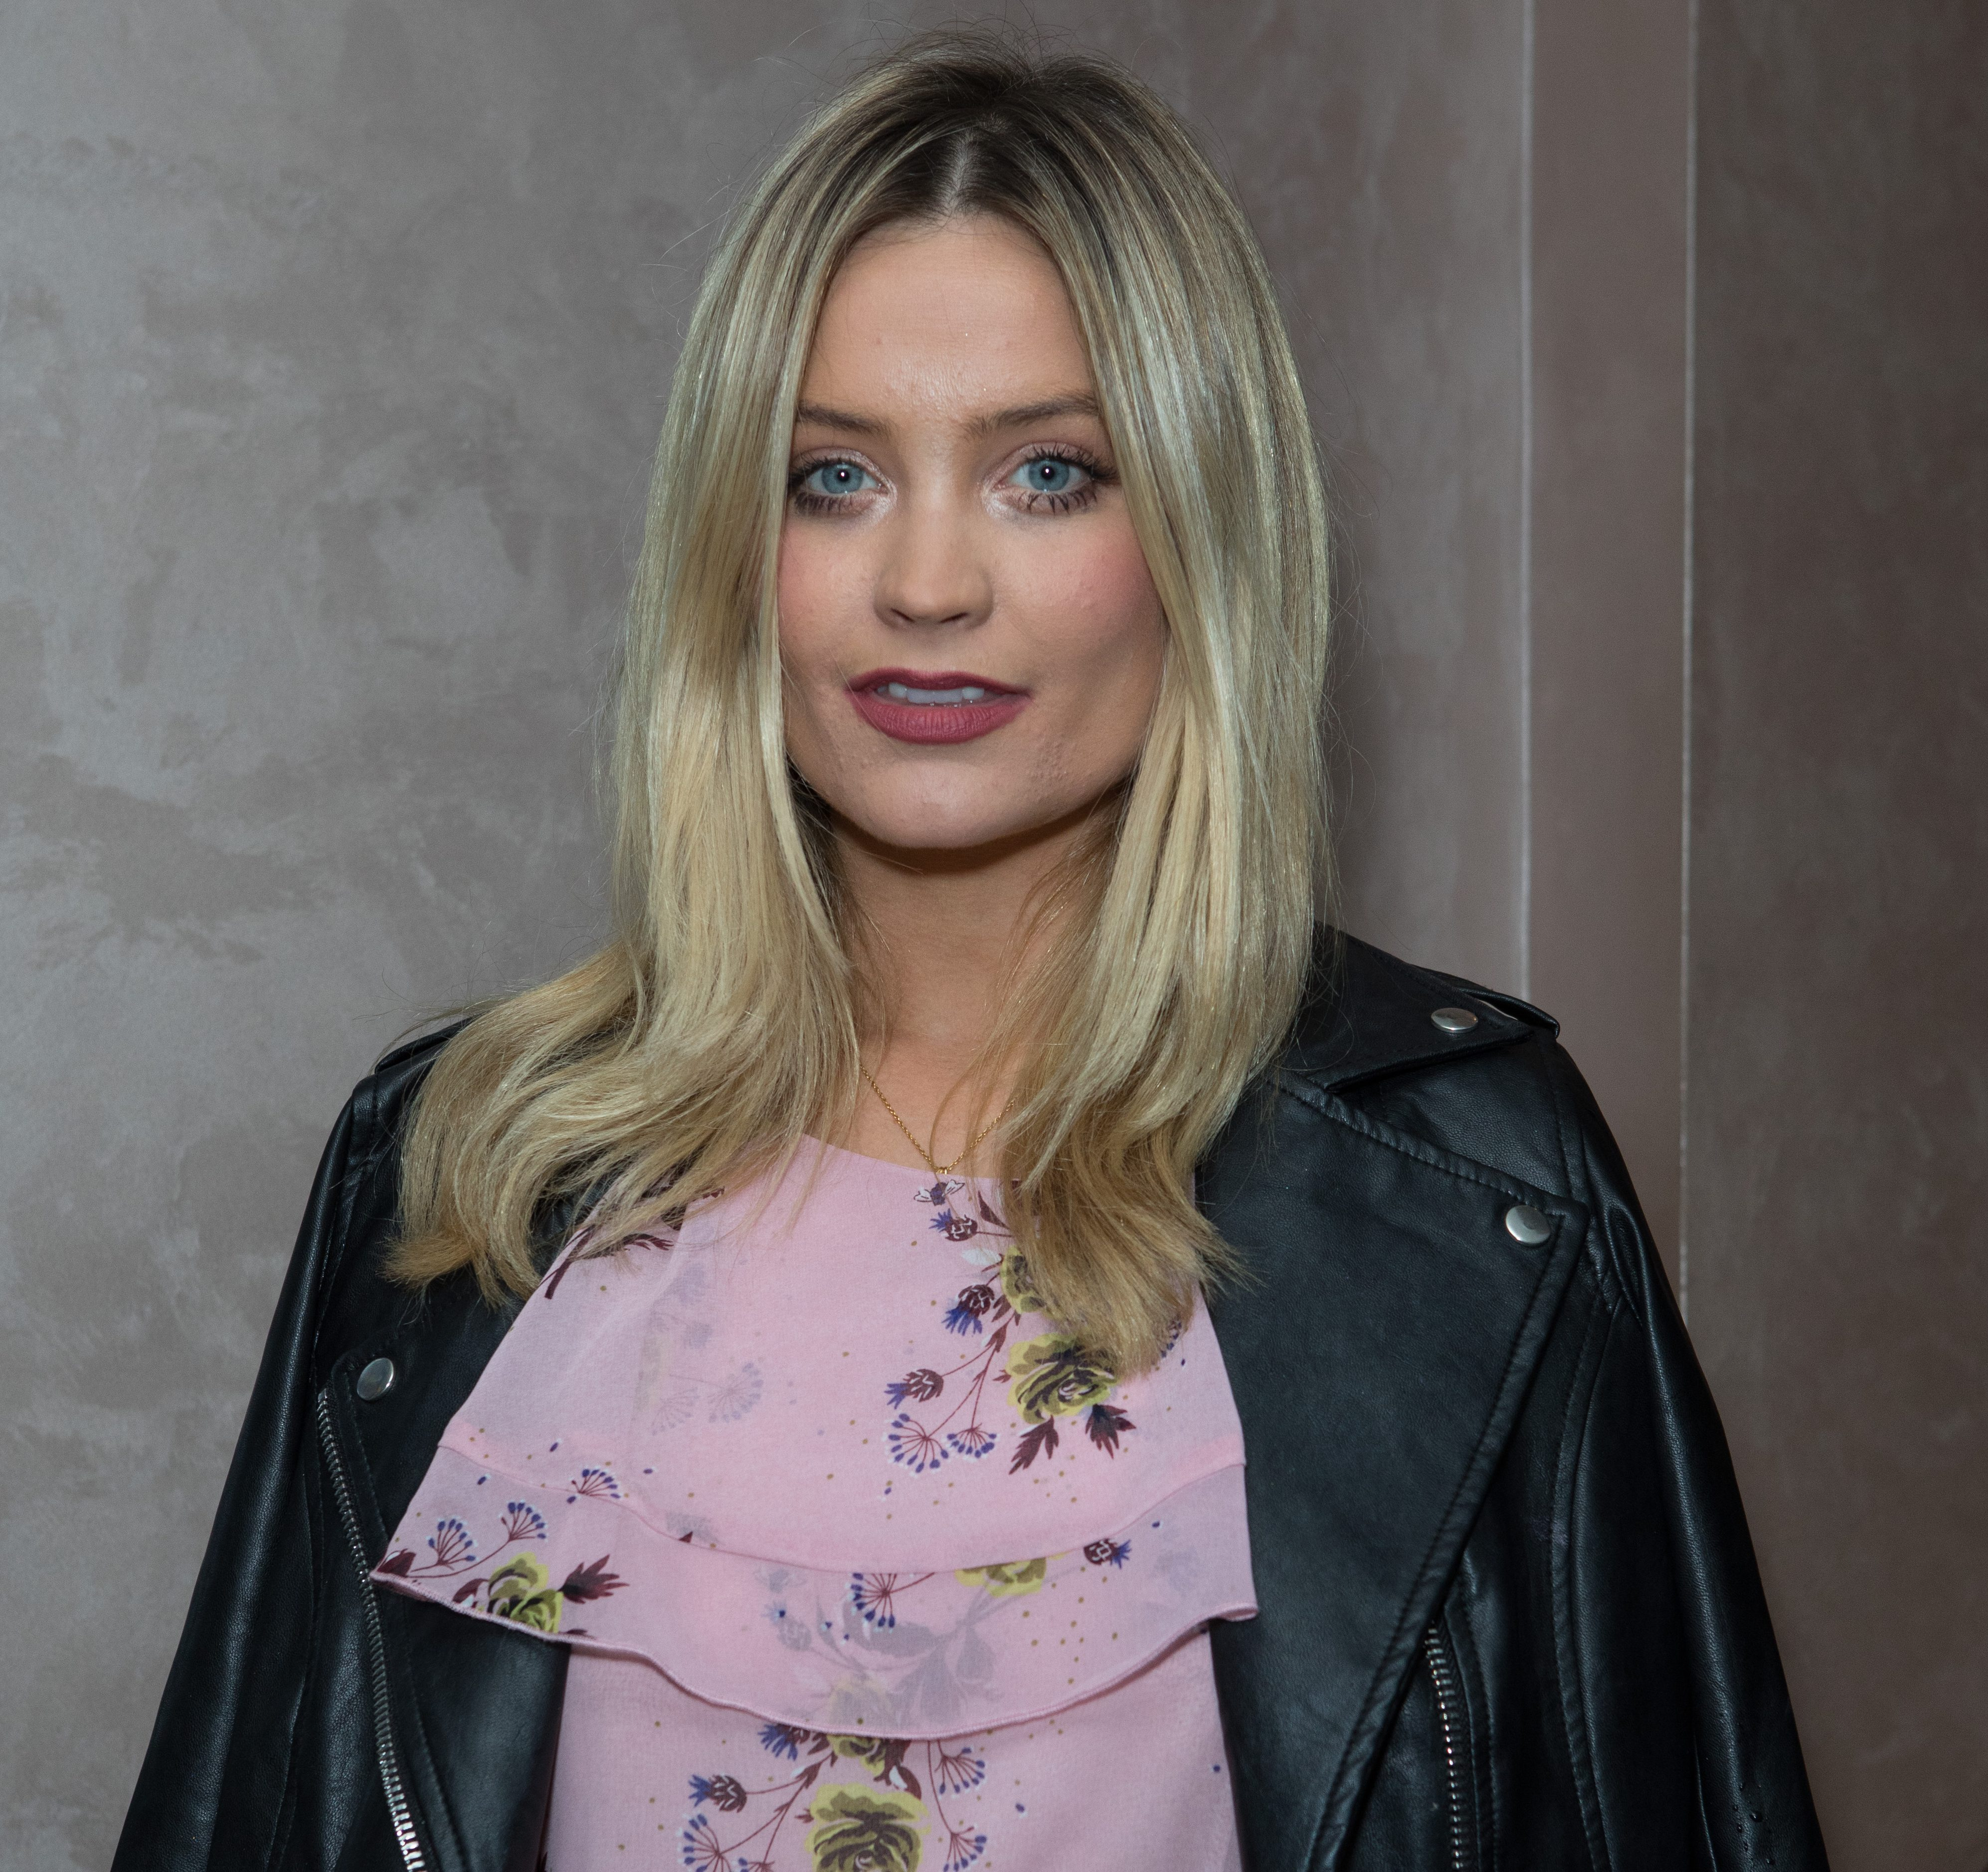 Instagram Laura Whitmore nudes (31 photos), Topless, Is a cute, Boobs, braless 2017